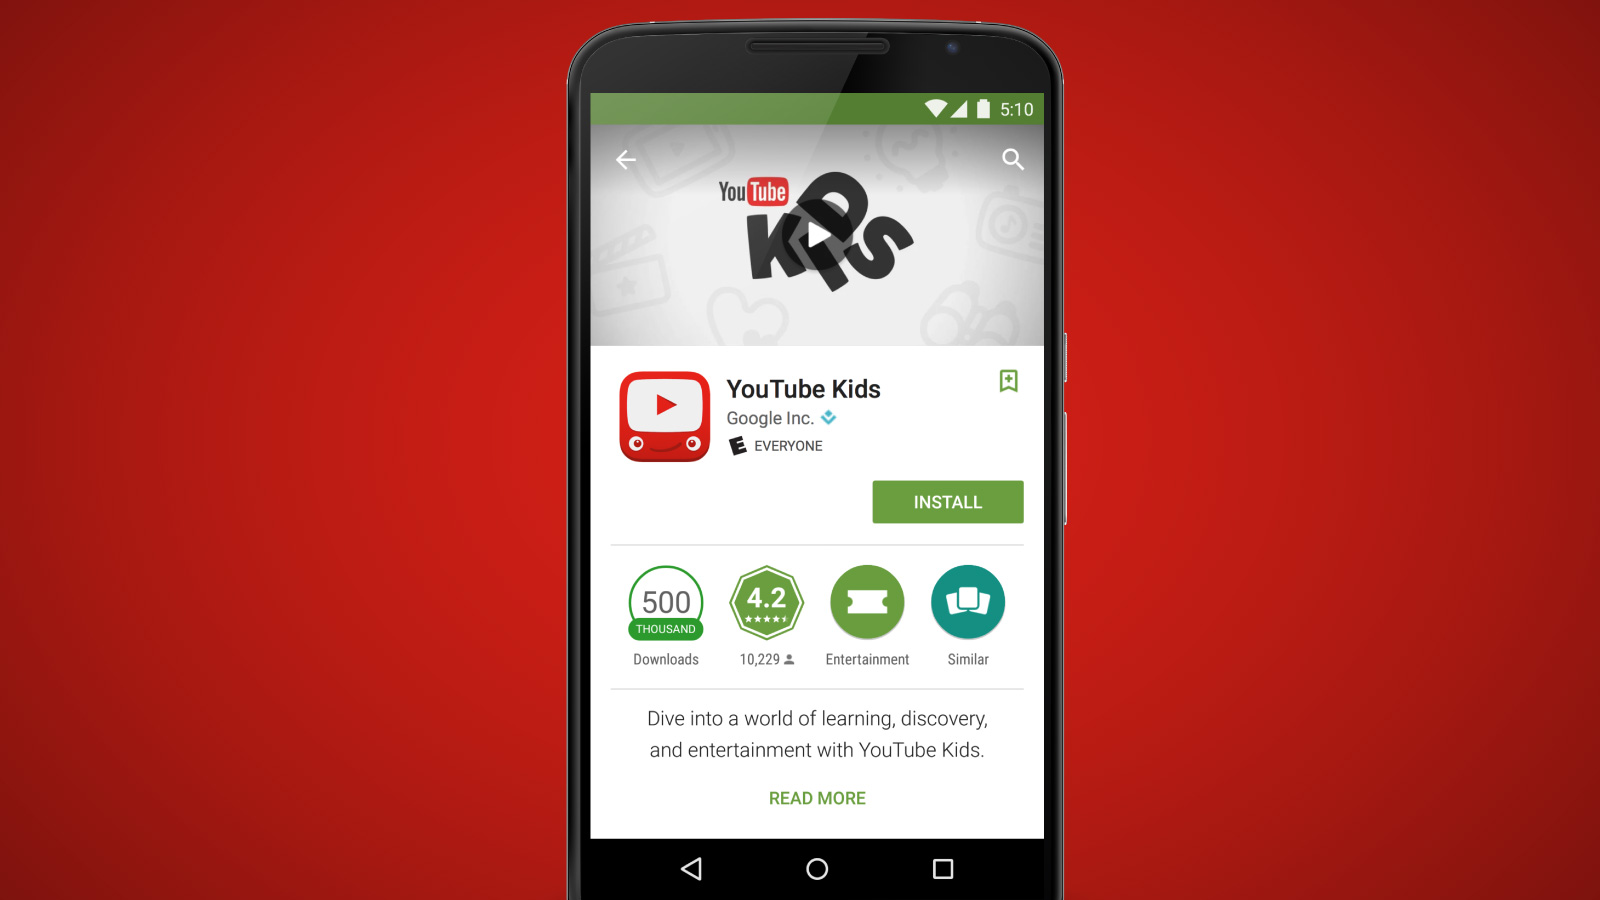 App Submissions On Google Play Now Reviewed By Staff, Will Include